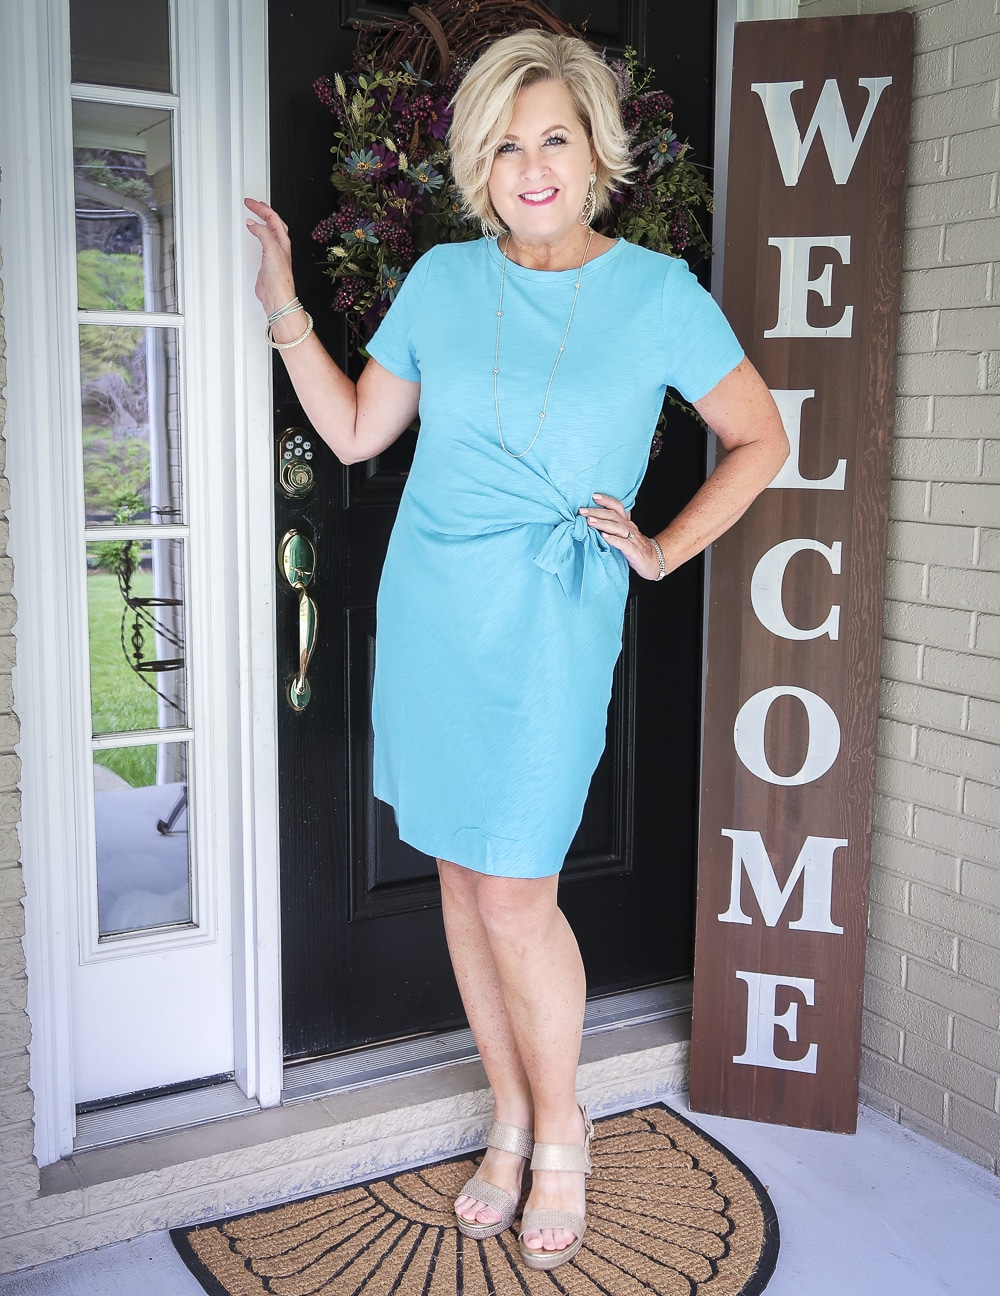 Fashion Blogger Tania Stephens is wearing a gorgeous blue side-tie dress and a pair of gold metallic espadrille sandals